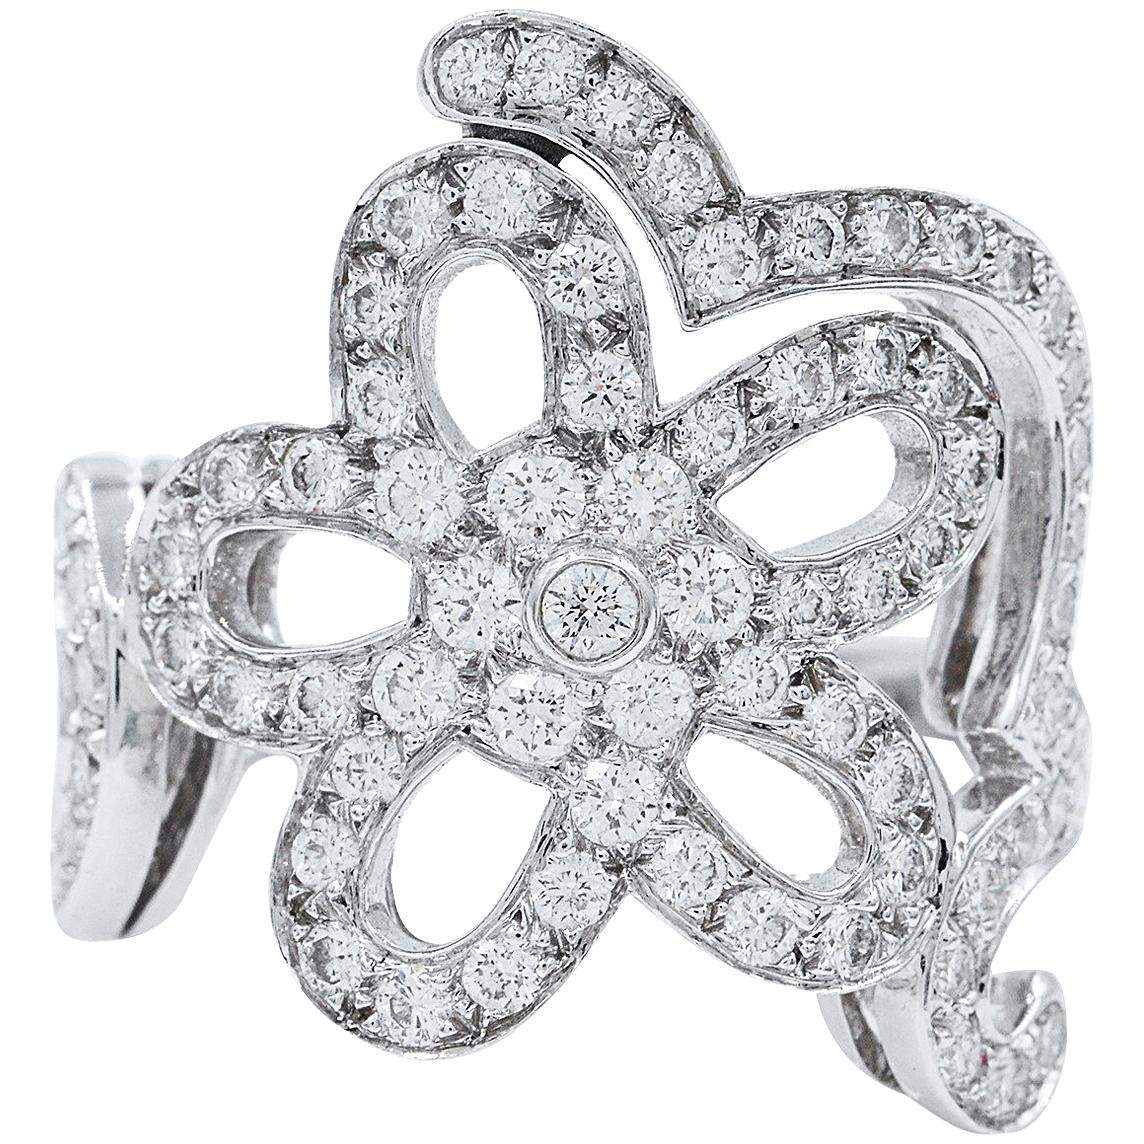 van cleef arpels rings 357 for sale at 1stdibs page 3 Wedding and Engagement Rings eBay